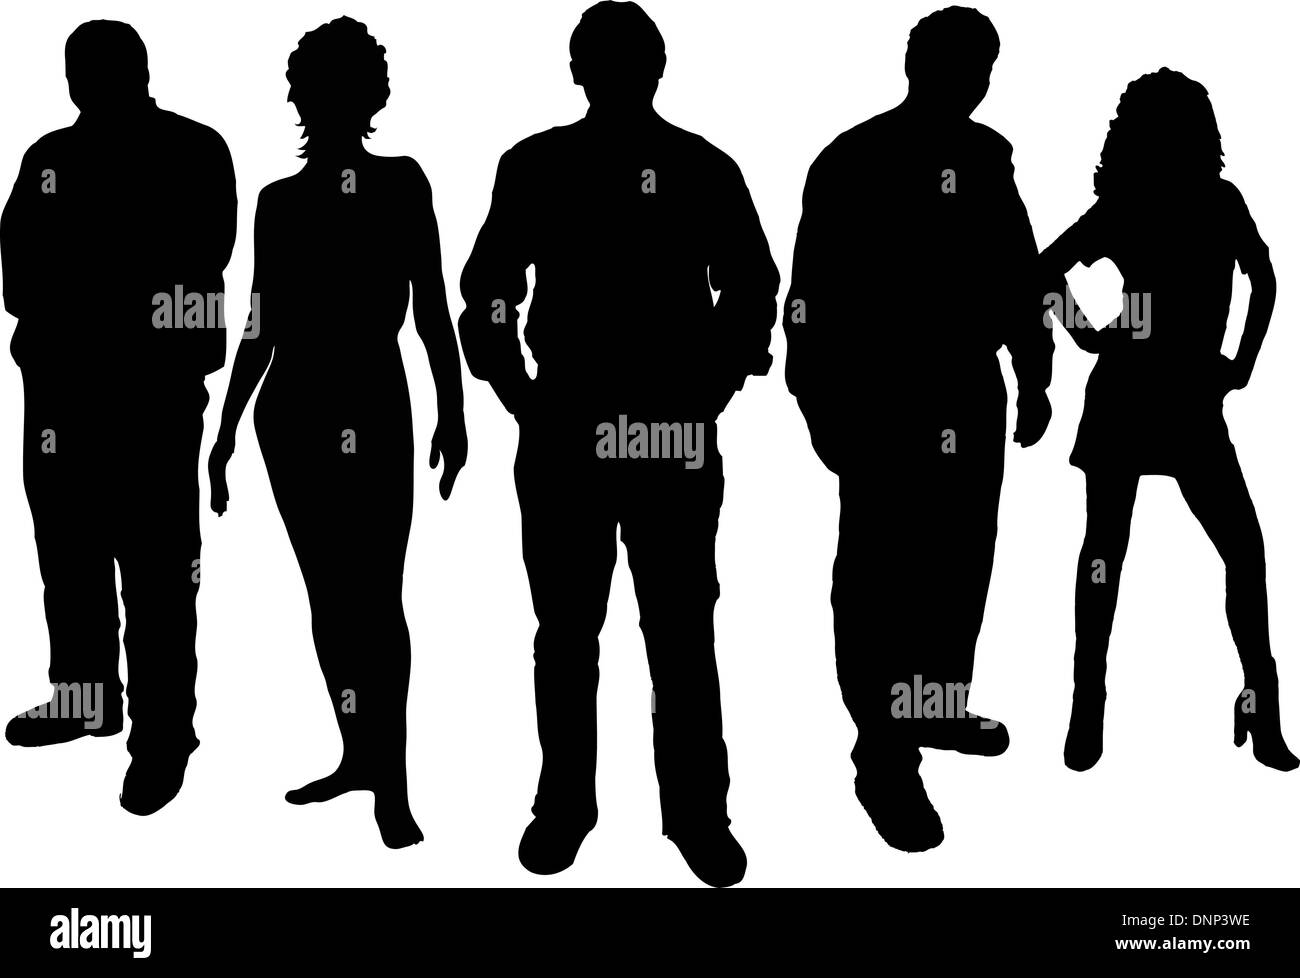 Silhouettes of young people - Stock Image